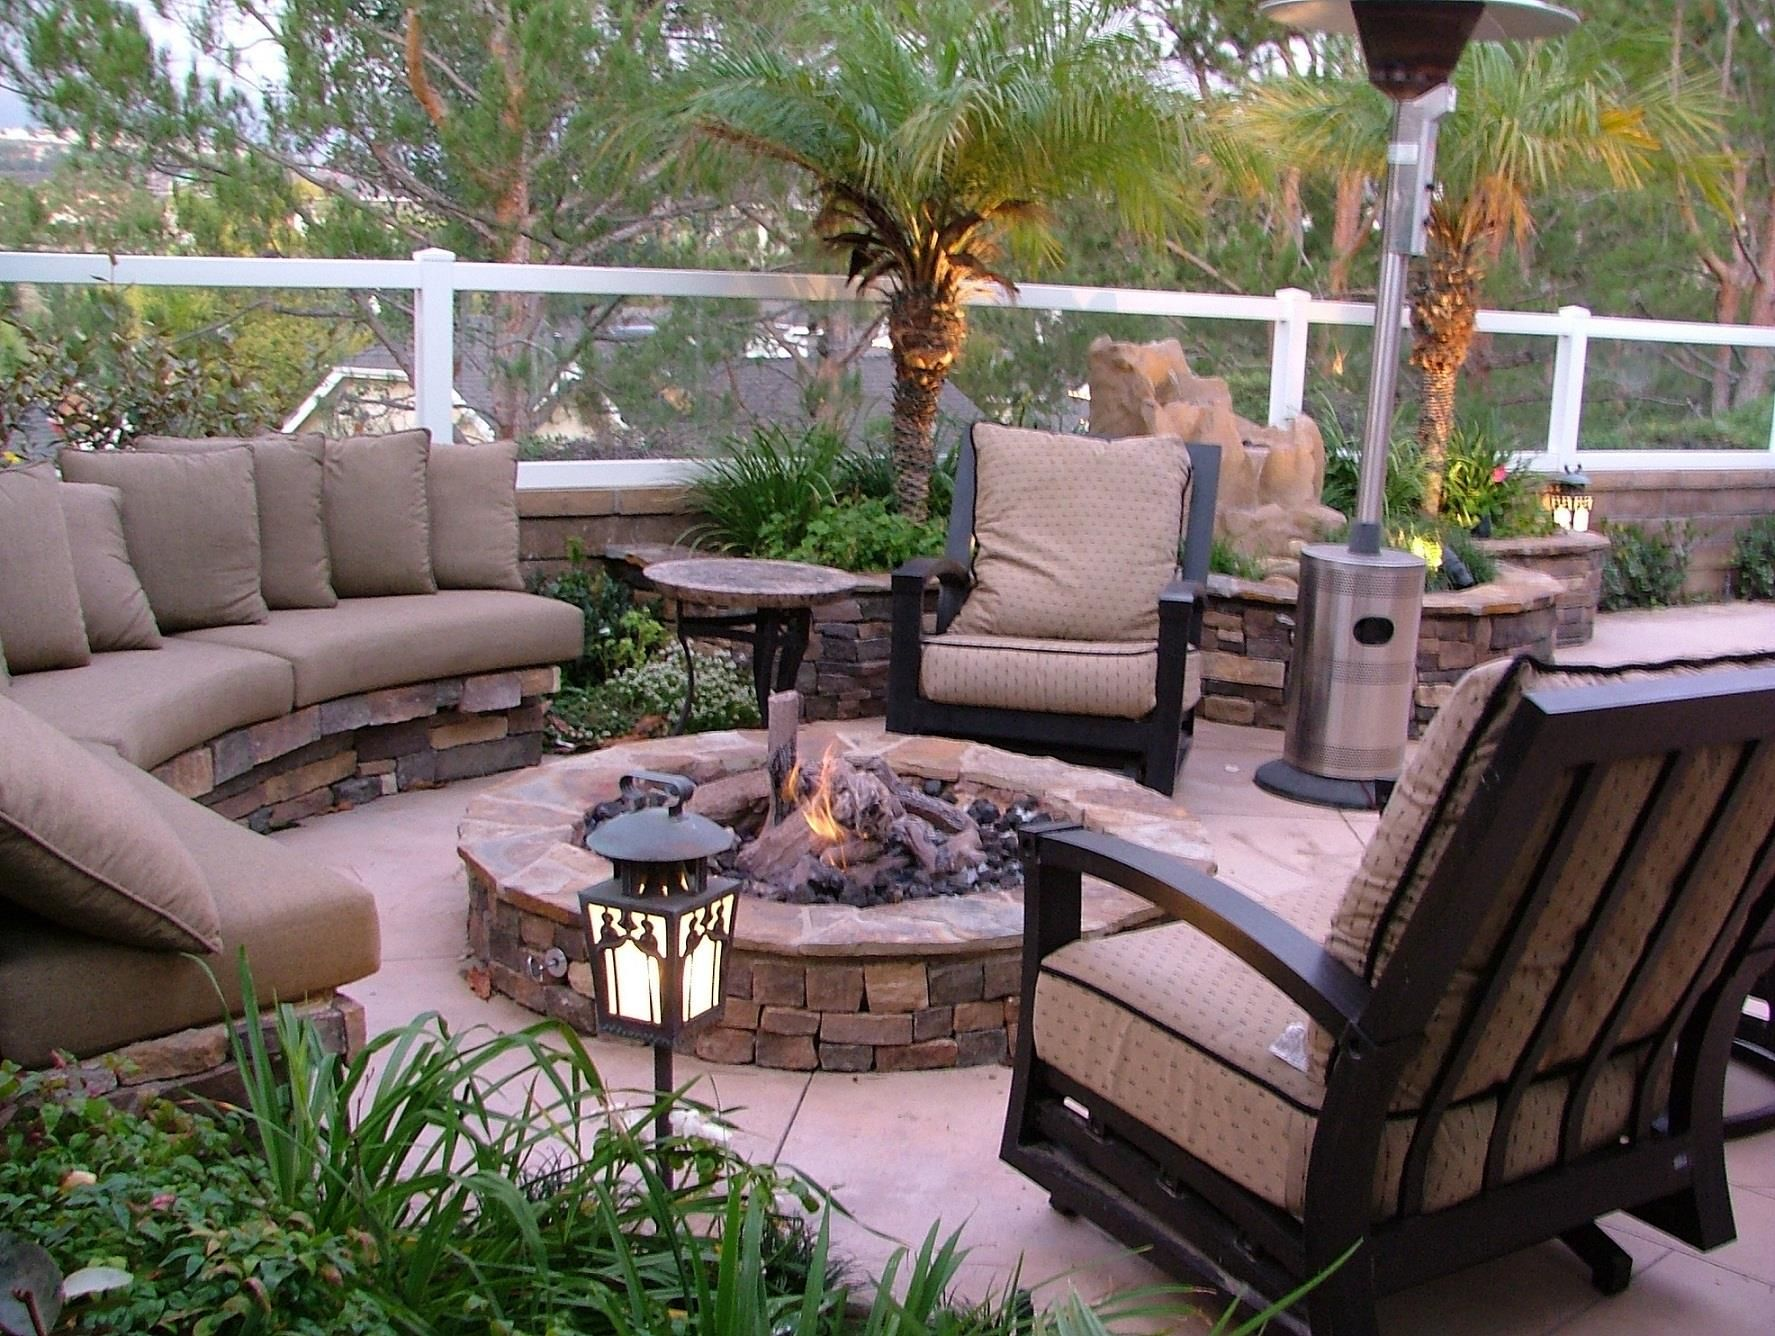 Do it yourself patio design ideas and features jardn do it yourself patio design ideas and features solutioingenieria Images